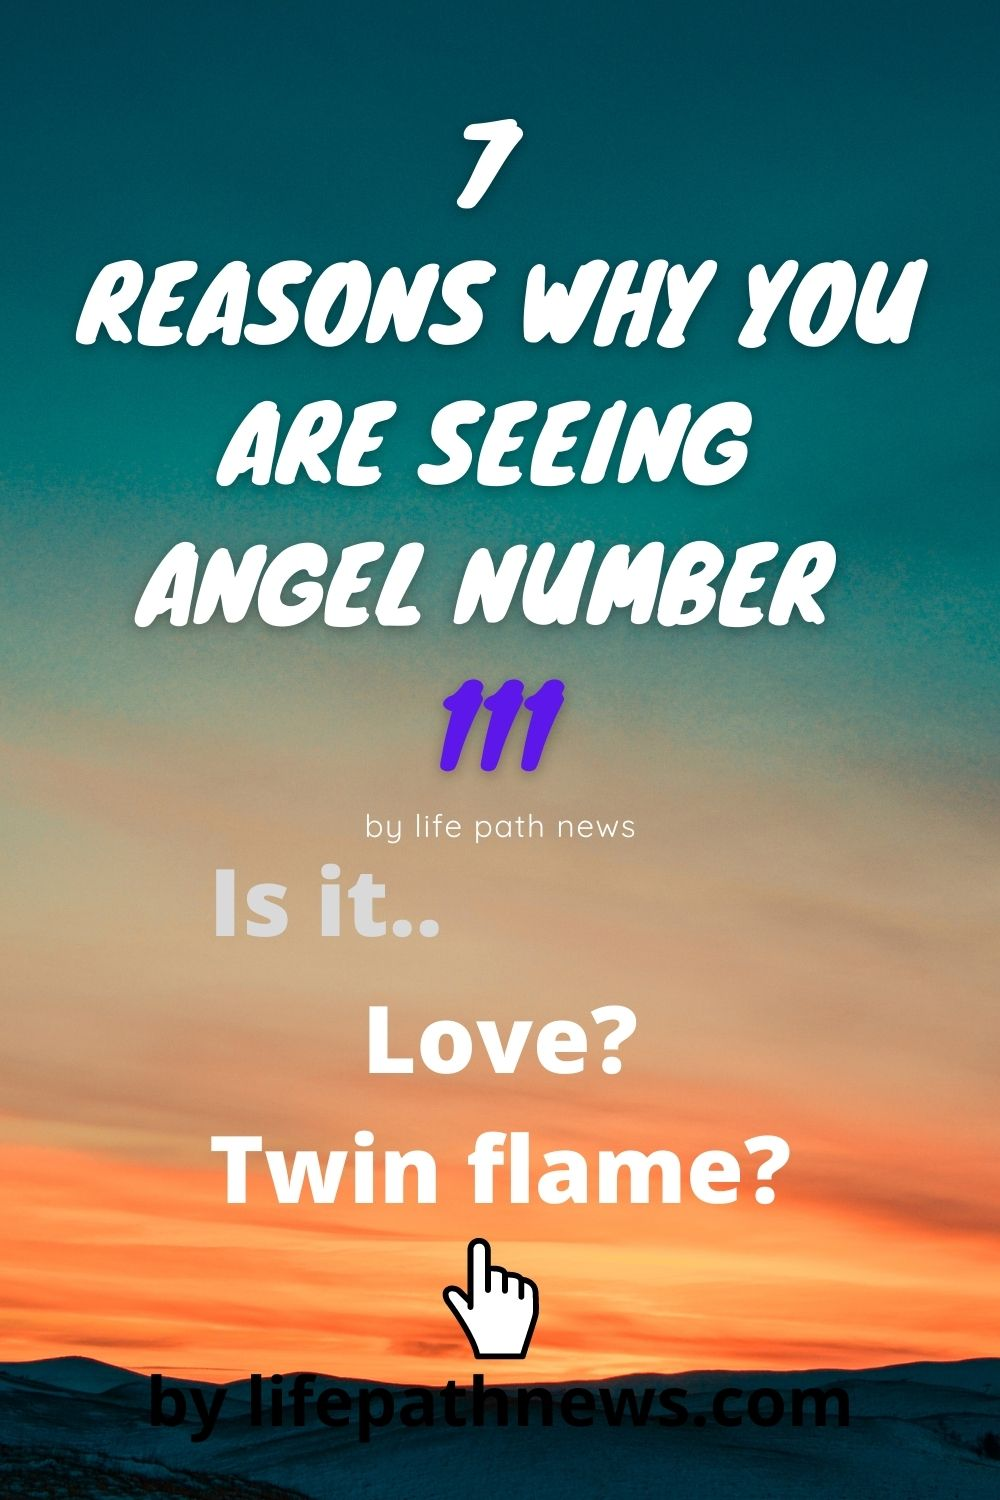 Meaning of angel number 111